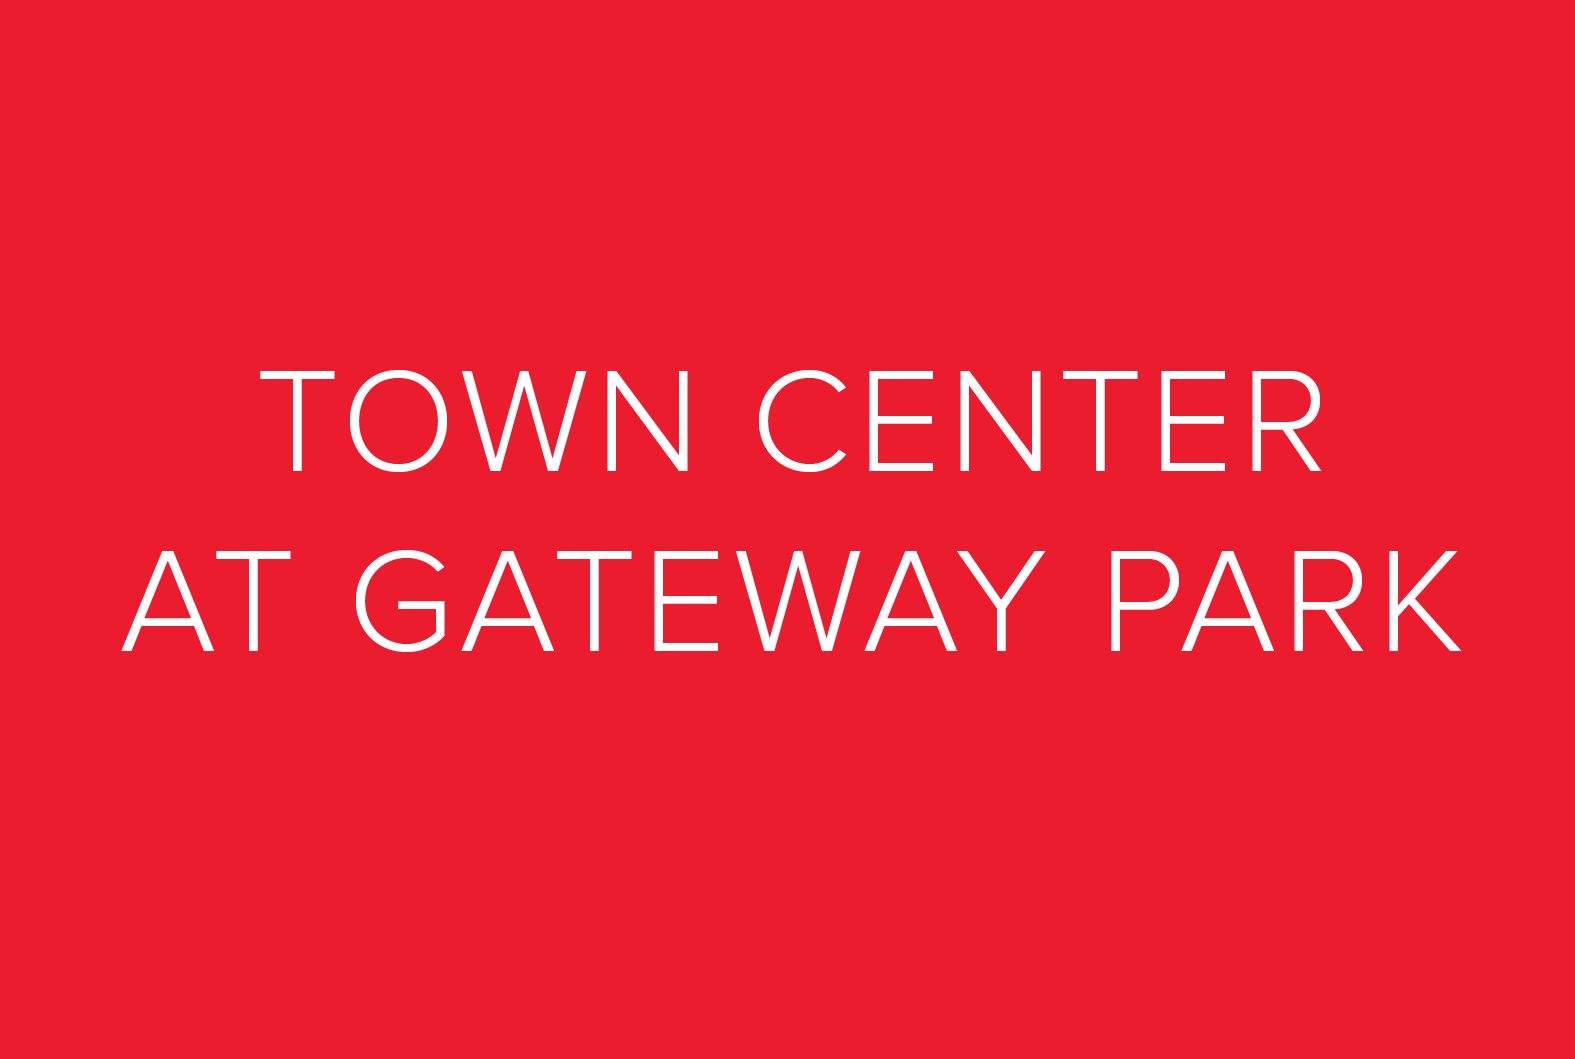 town center at gateway park.png